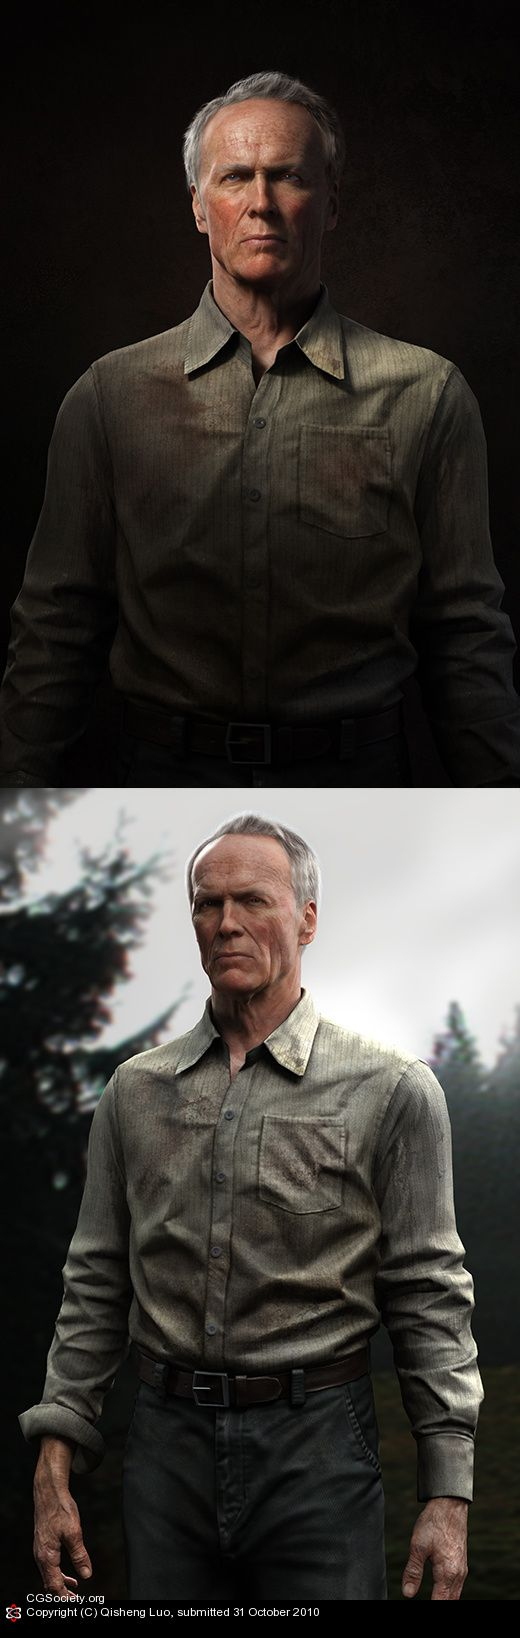 Clint Eastwood recreated as a computer generated character. Another example how close computer graphics are to fool us all that it is an actual photo.